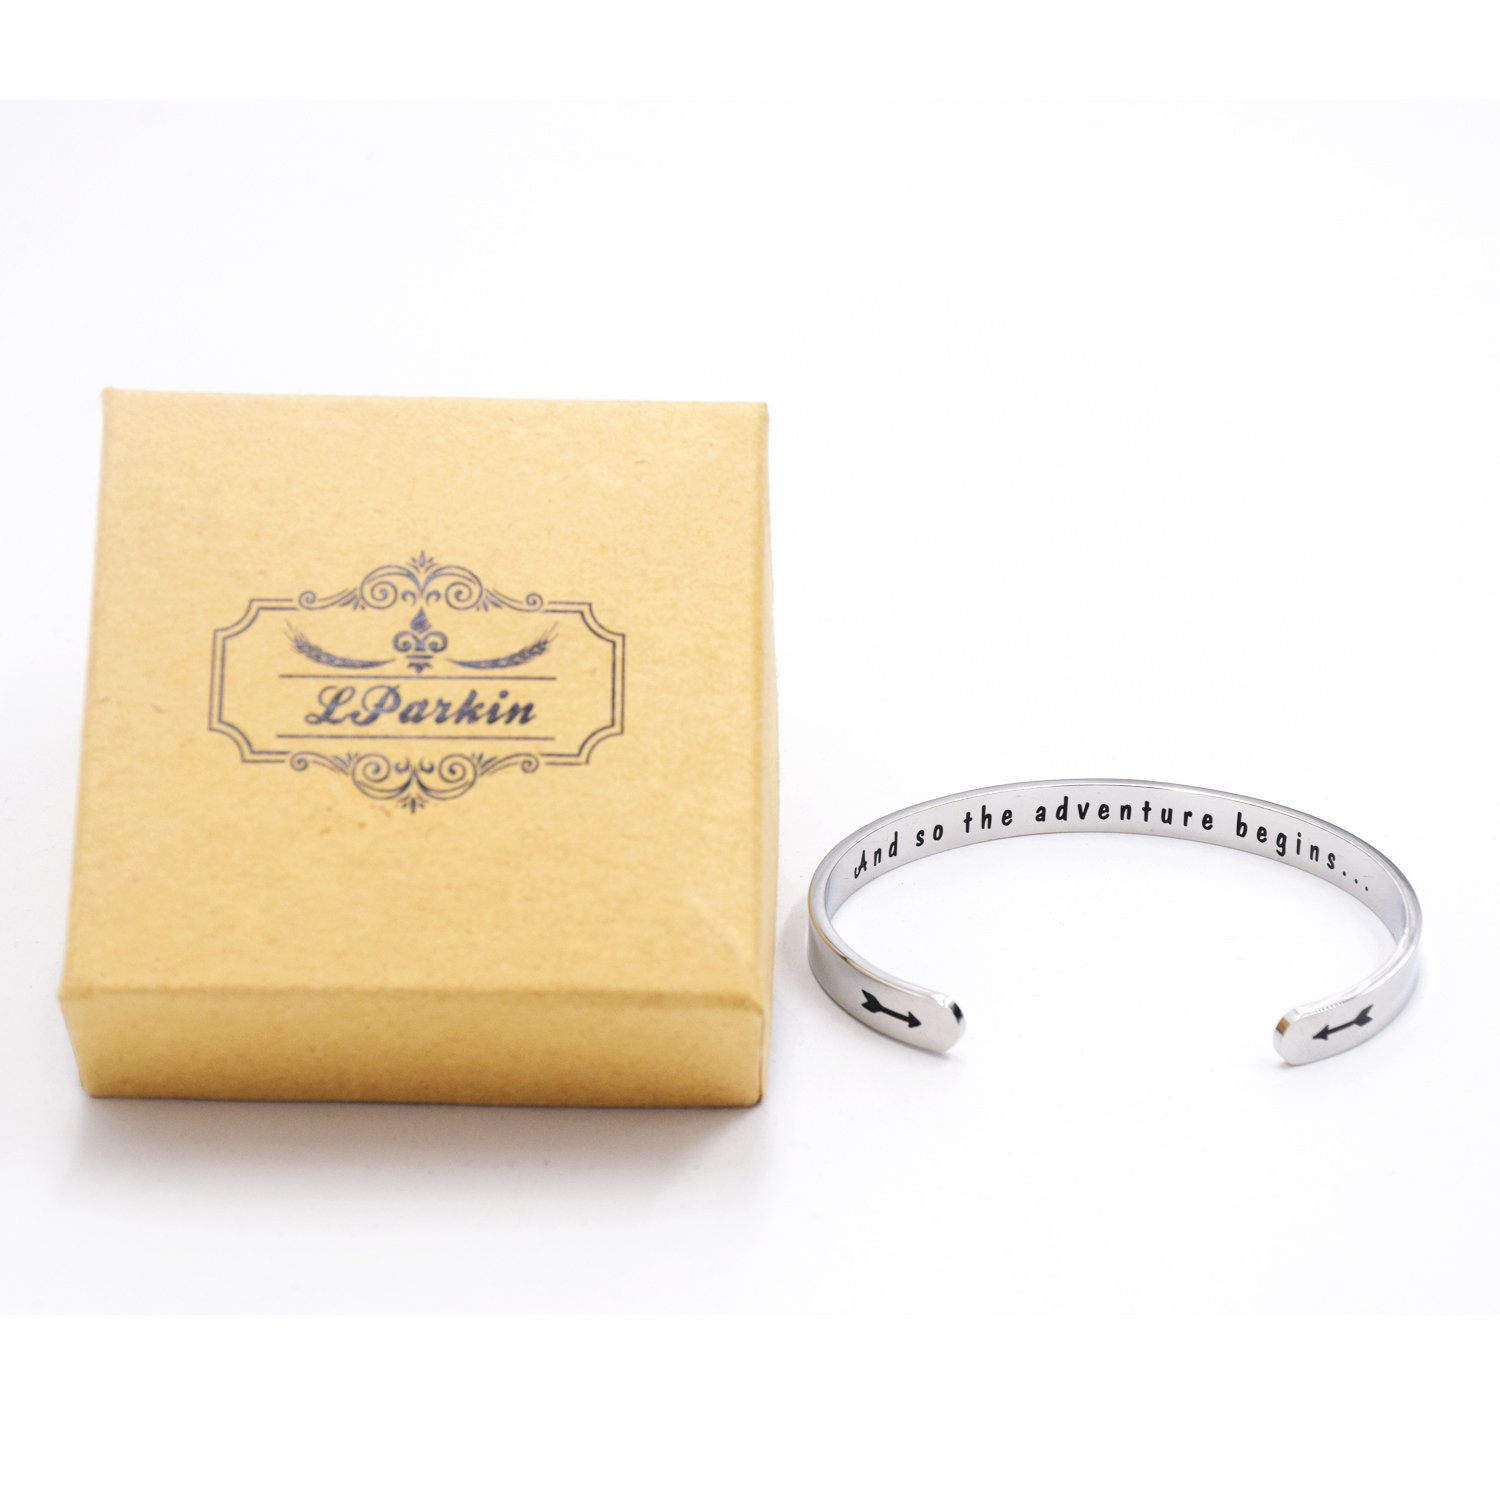 LParkin Class of 2018 2019 Gift And So the Adventure Begins Cuff Bracelet Graduation Gift (Cuff) by LParkin (Image #5)